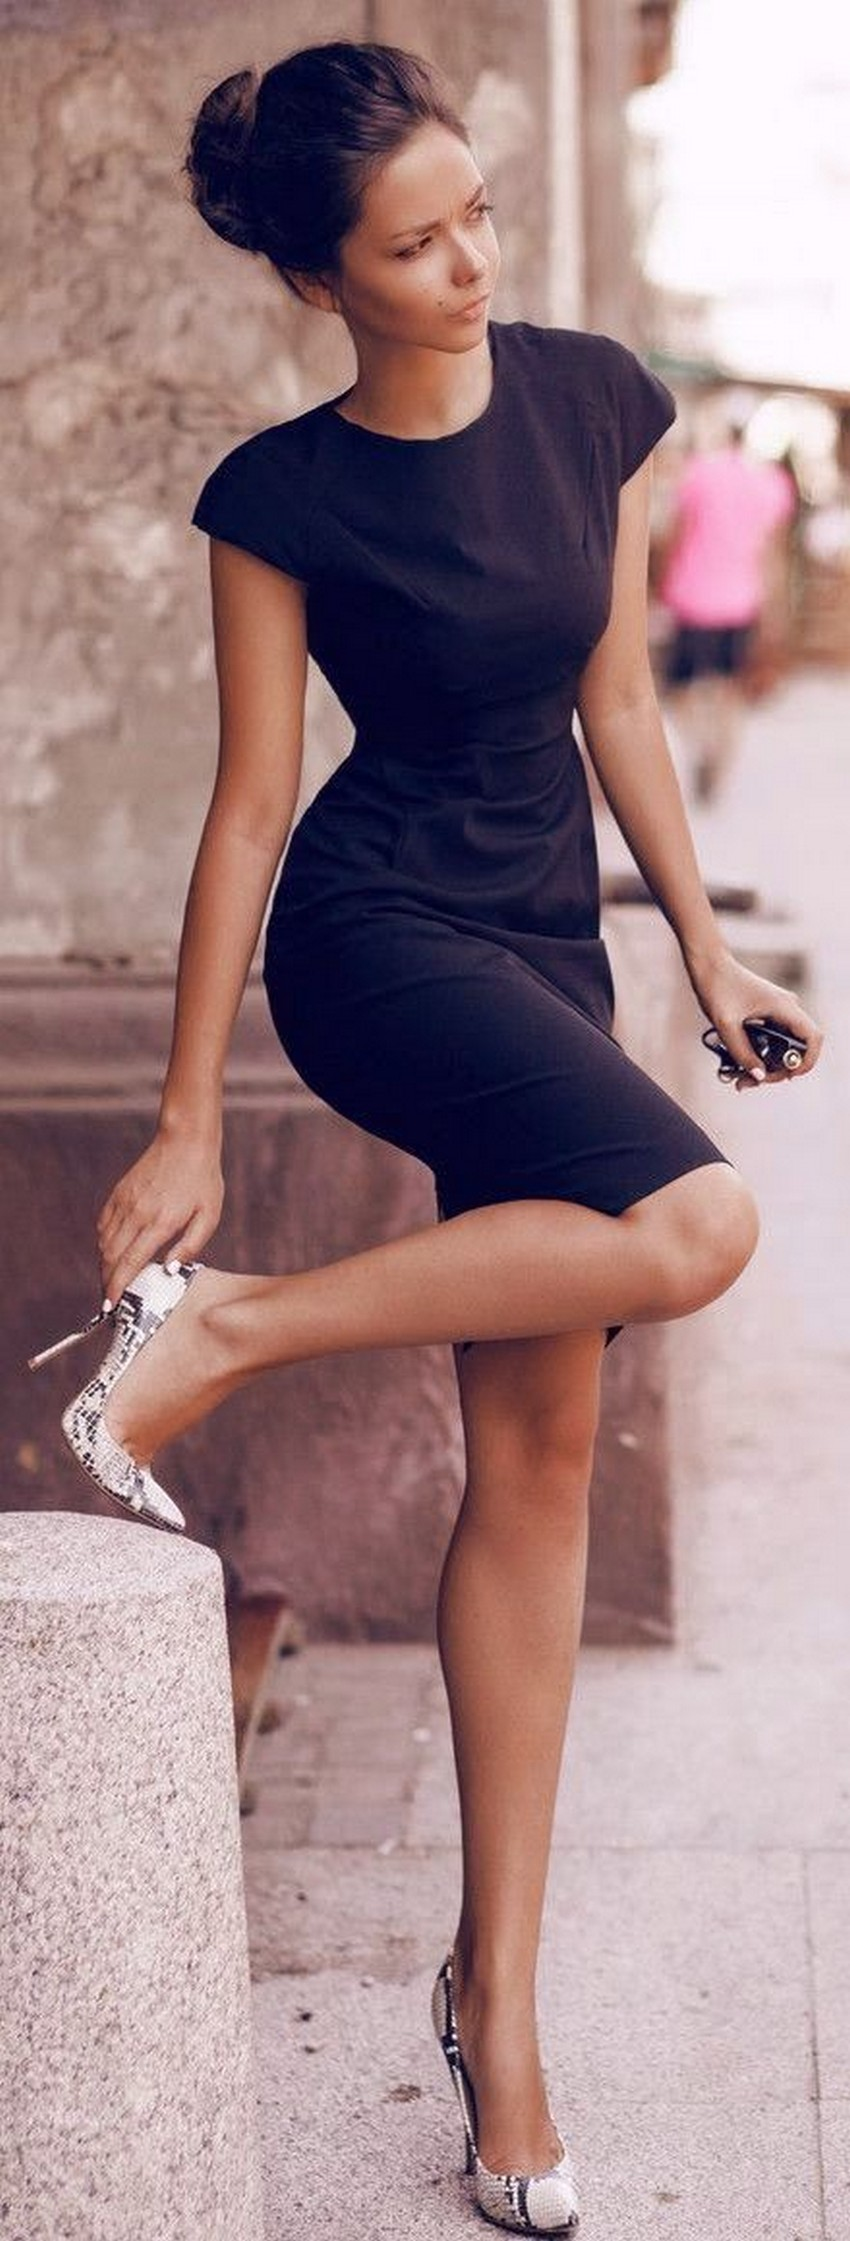 8. LBD | 10 Types of Dresses for Christmas Day | Image Source: http://emma-courtney.com